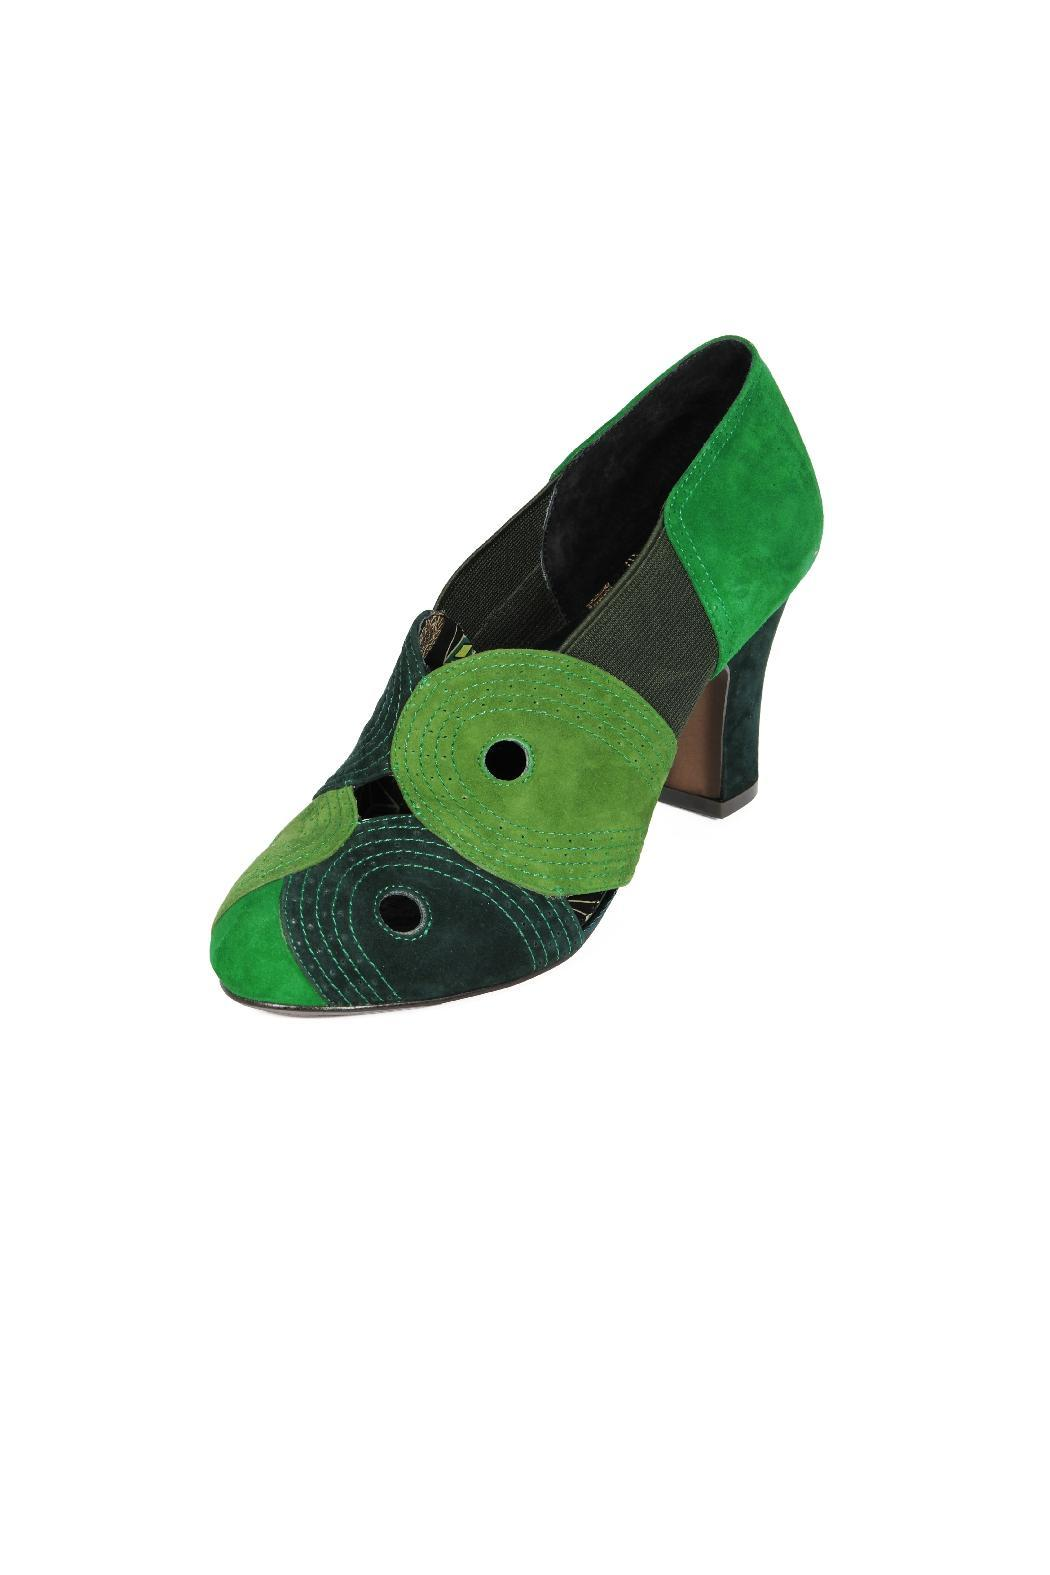 Miss L Fire Green Suede Heel - Main Image